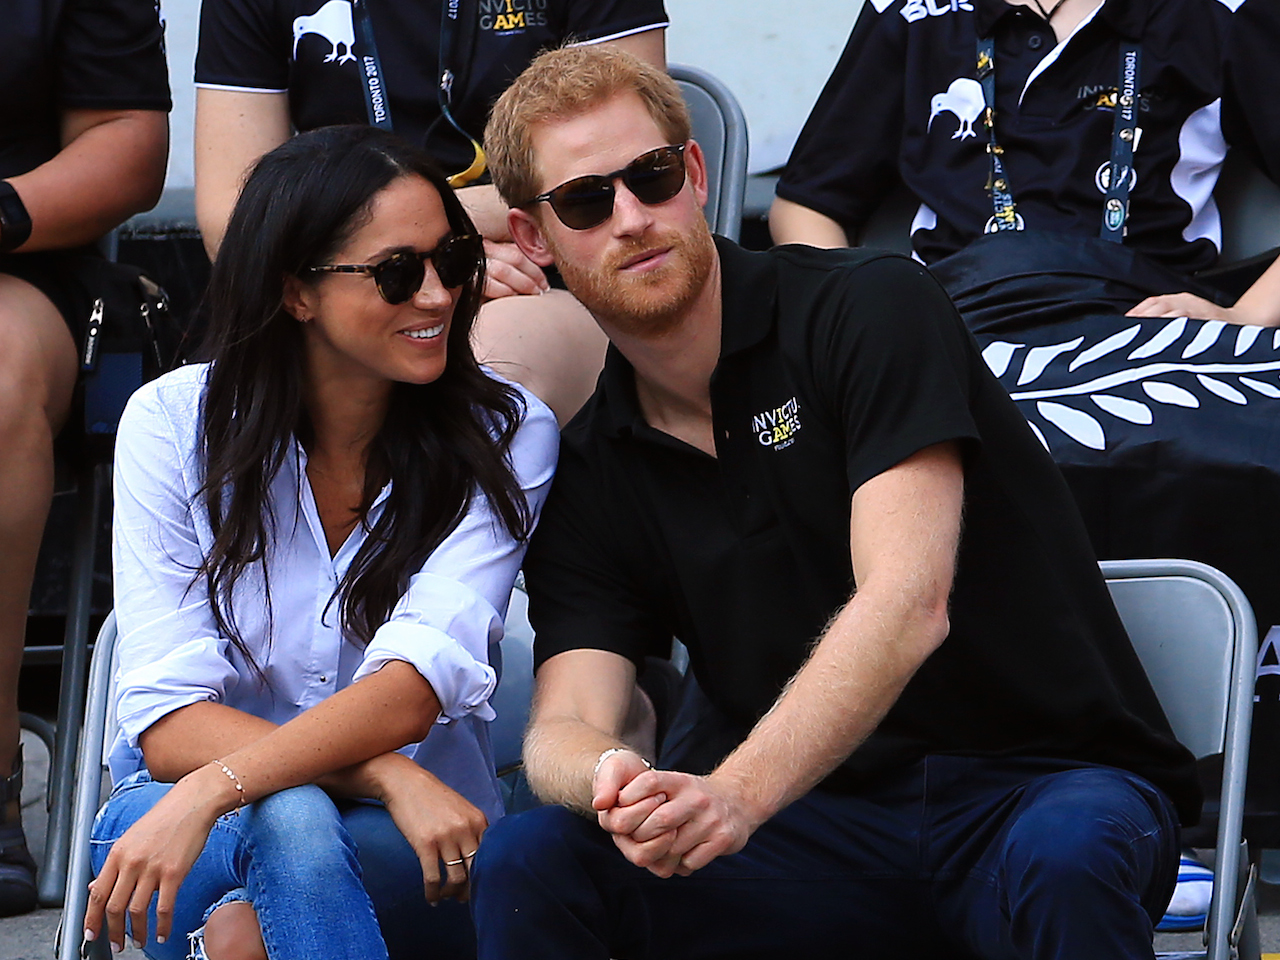 Prince Harry and Meghan Markle attend a Wheelchair Tennis match during the Invictus Games 2017 at Nathan Philips Square on September 25, 2017 in Toronto.